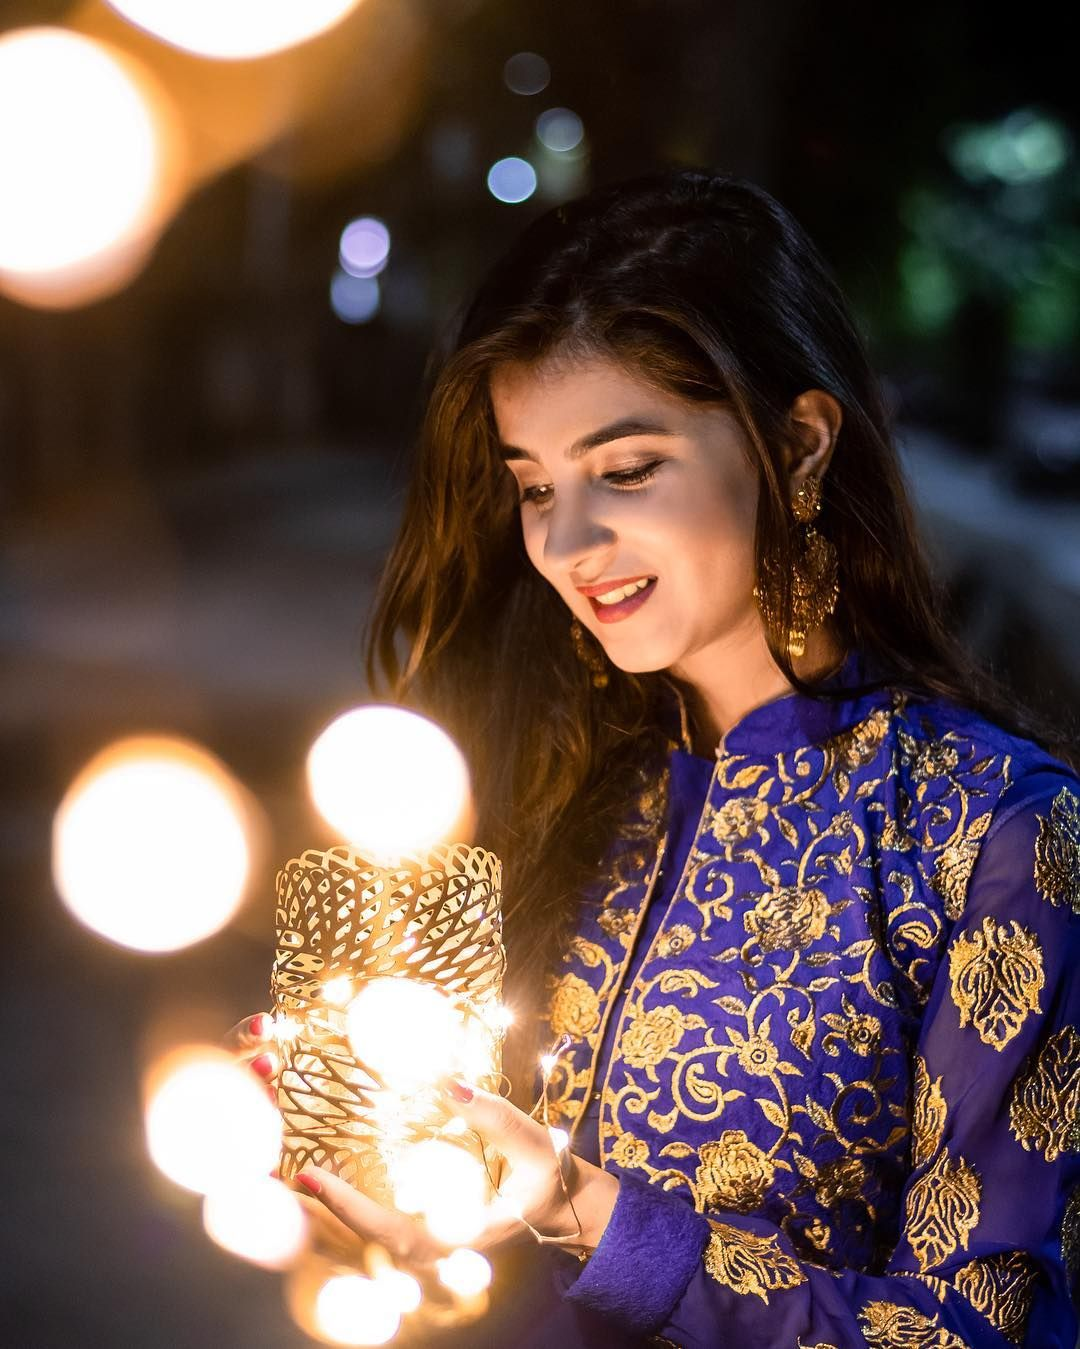 Image May Contain 1 Person Night Girly Photography Beautiful Girl Face Stylish Girl Images